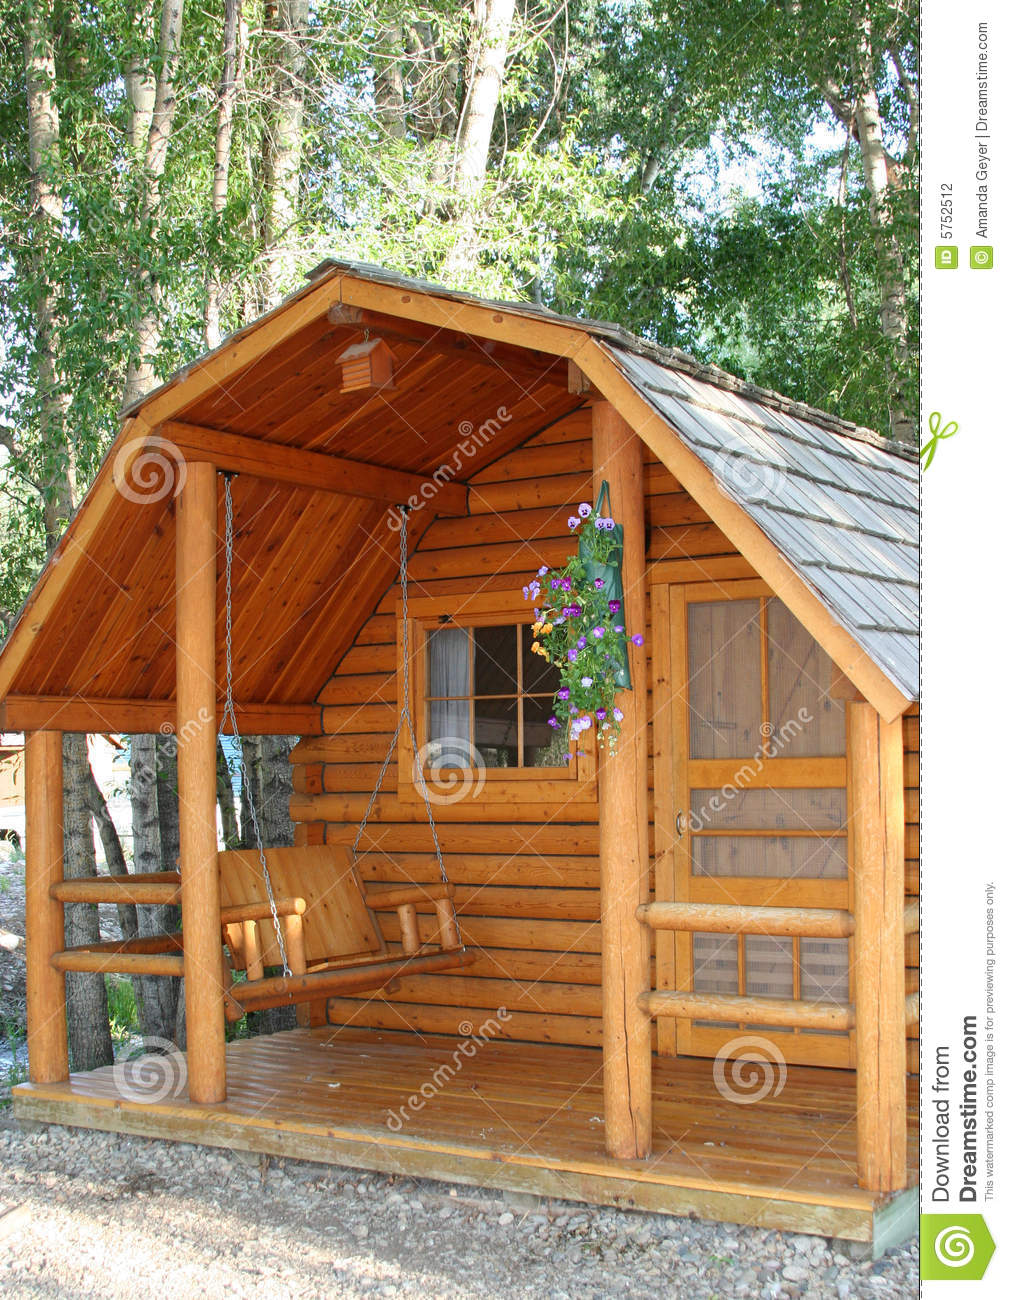 Small wood cabin stock photo image of home vacation for Small lodge plans